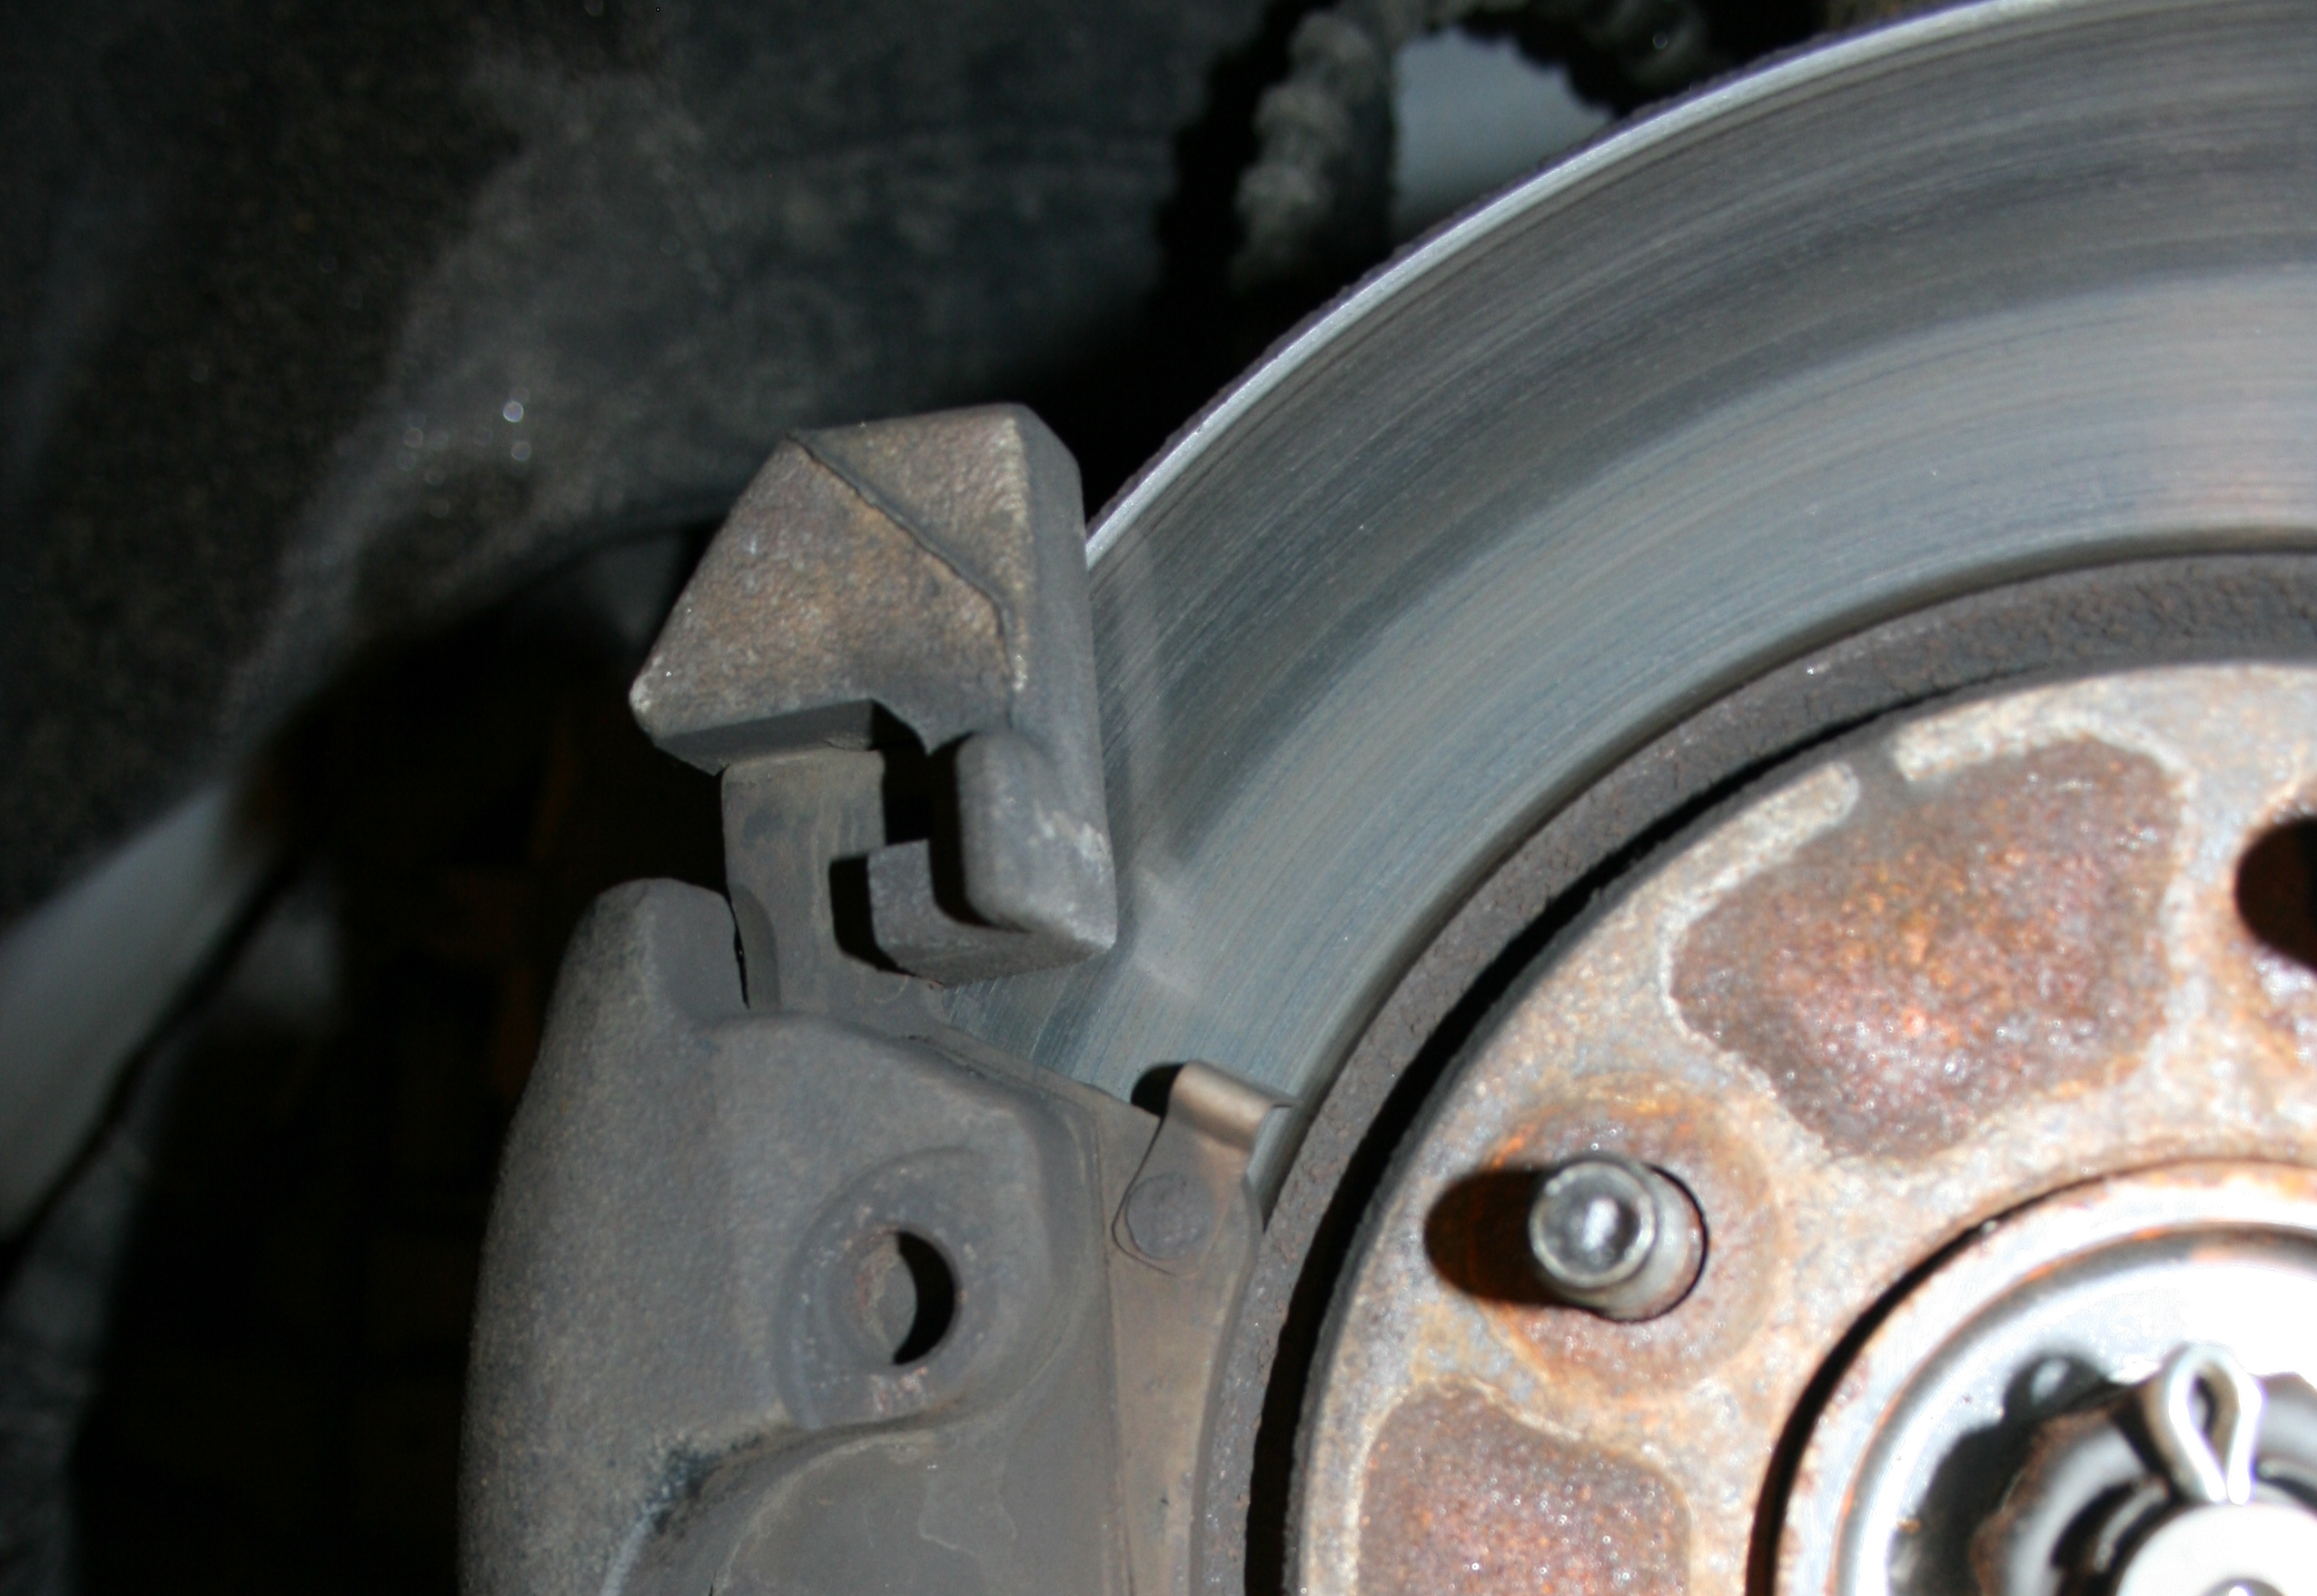 Brake Rotor Discoloration: Likely Caused by Sticking Brake Pad.